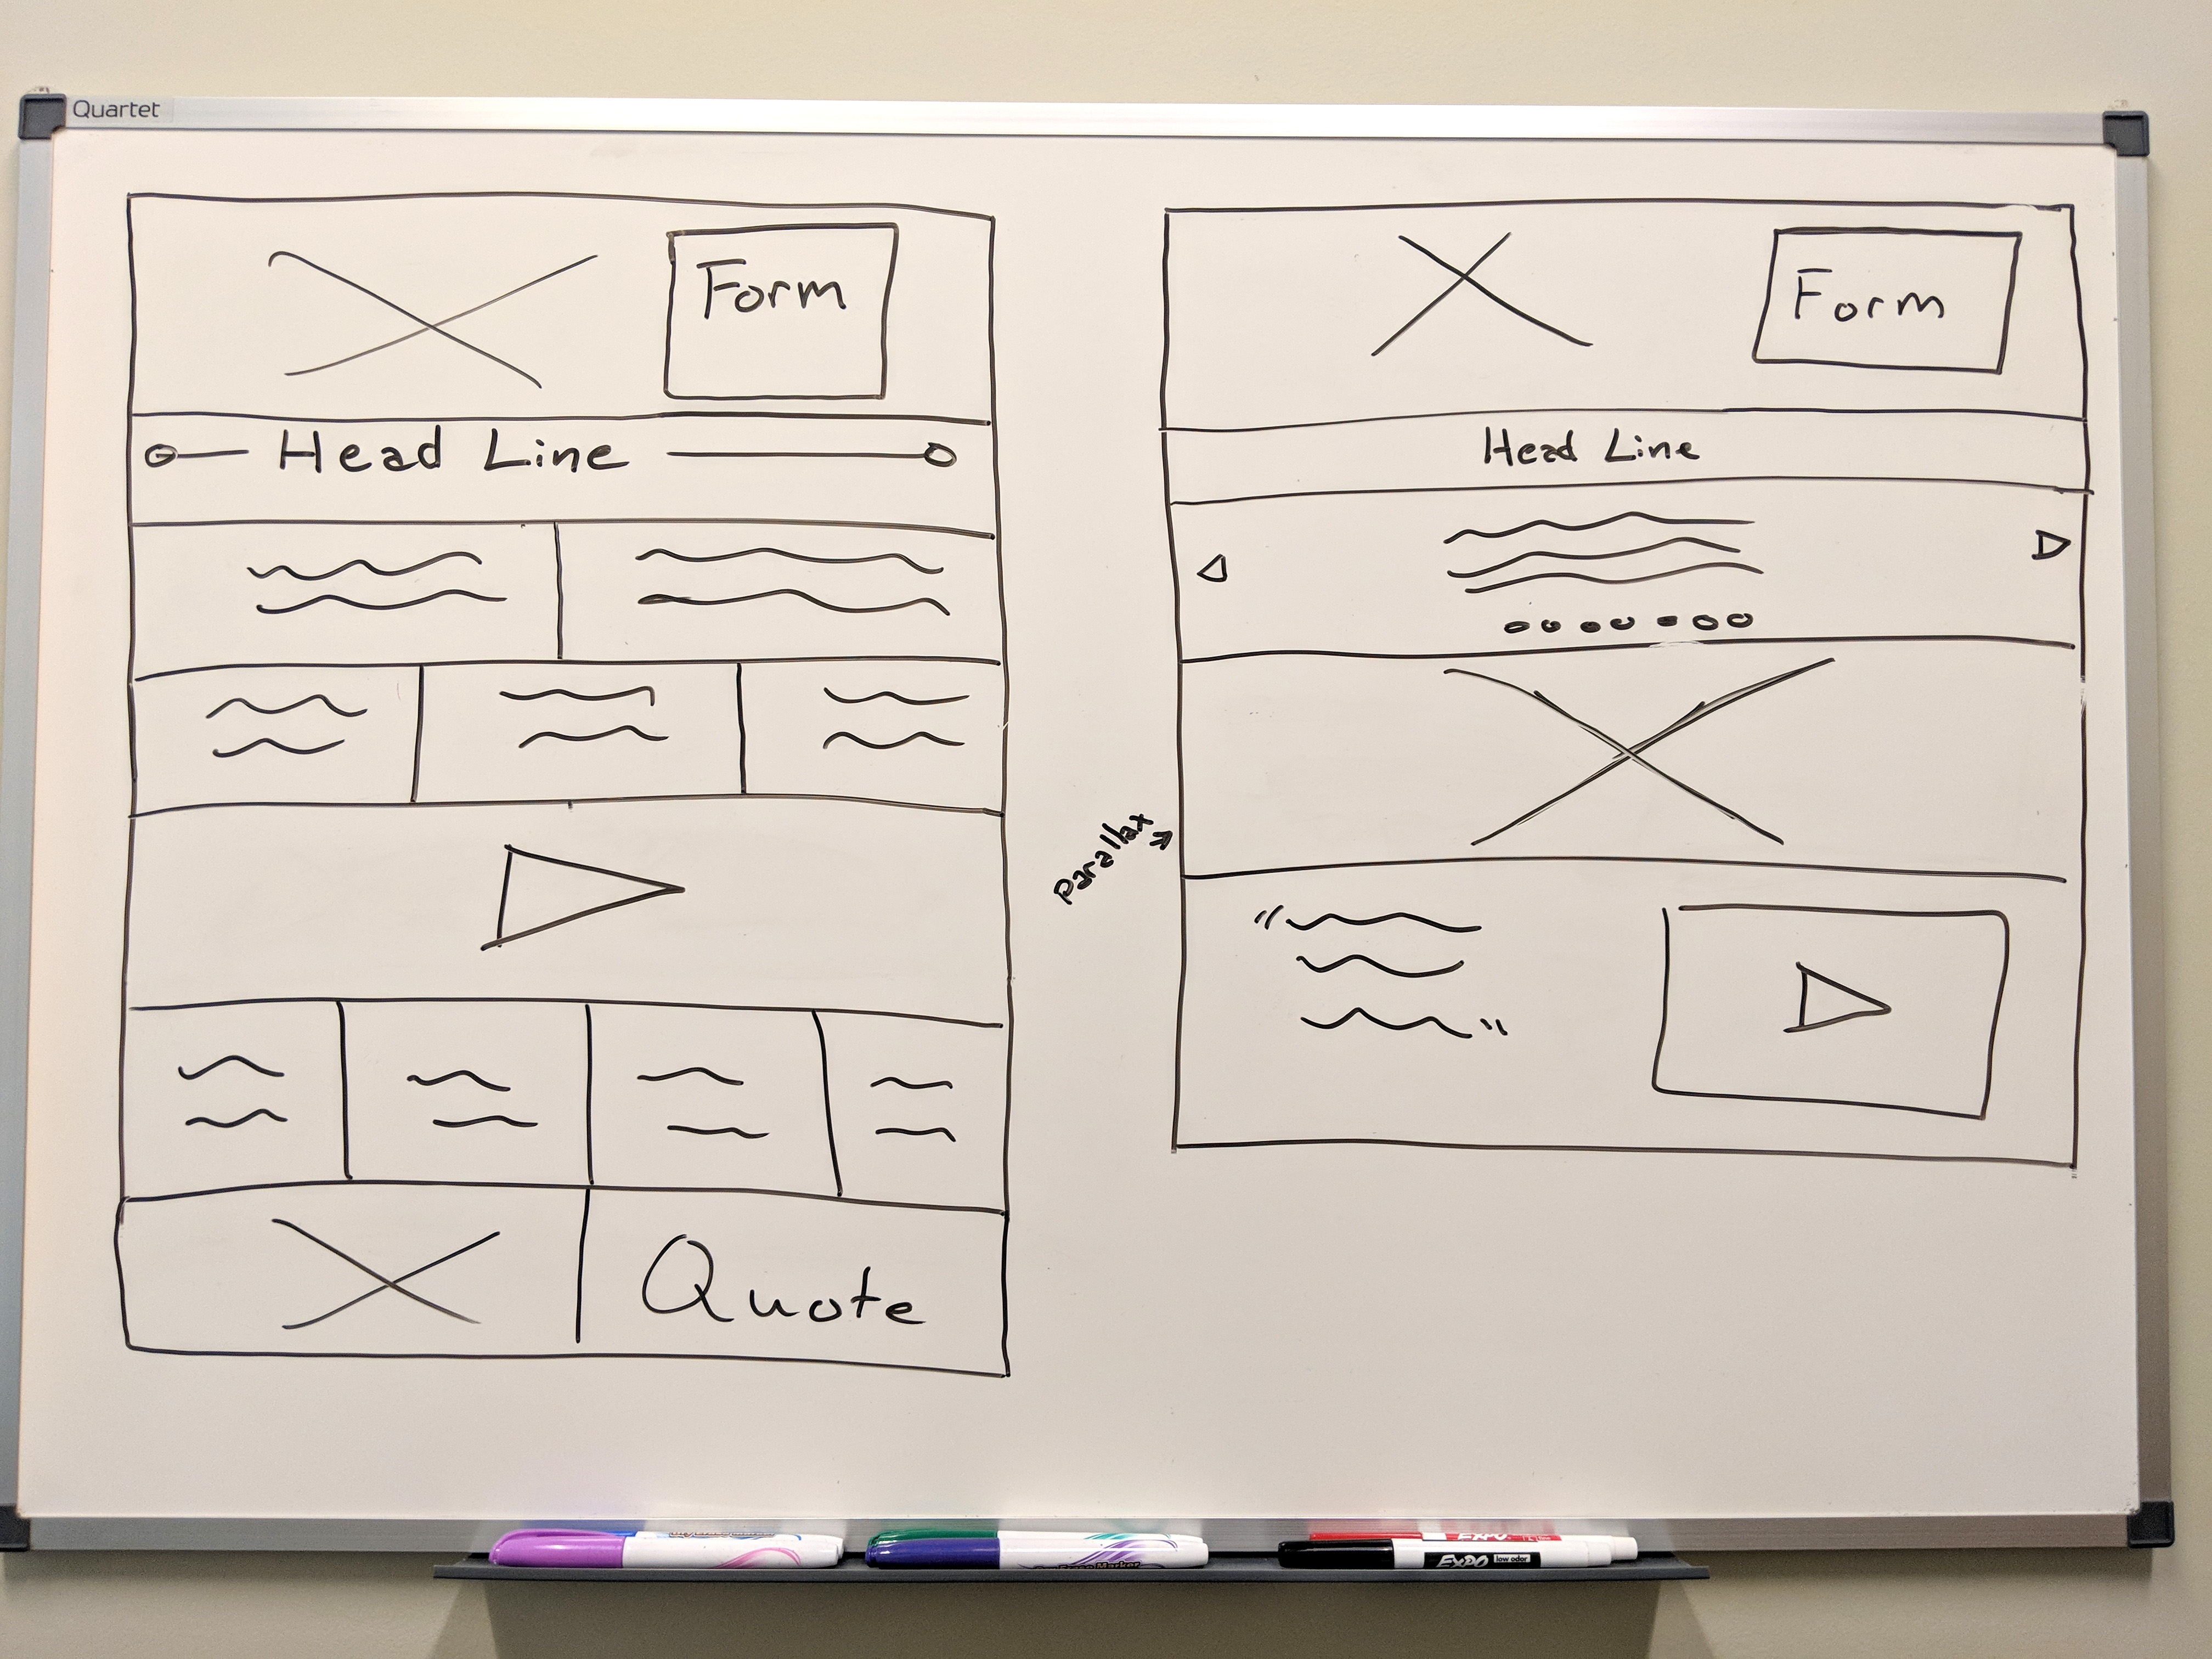 ad landing page wireframe